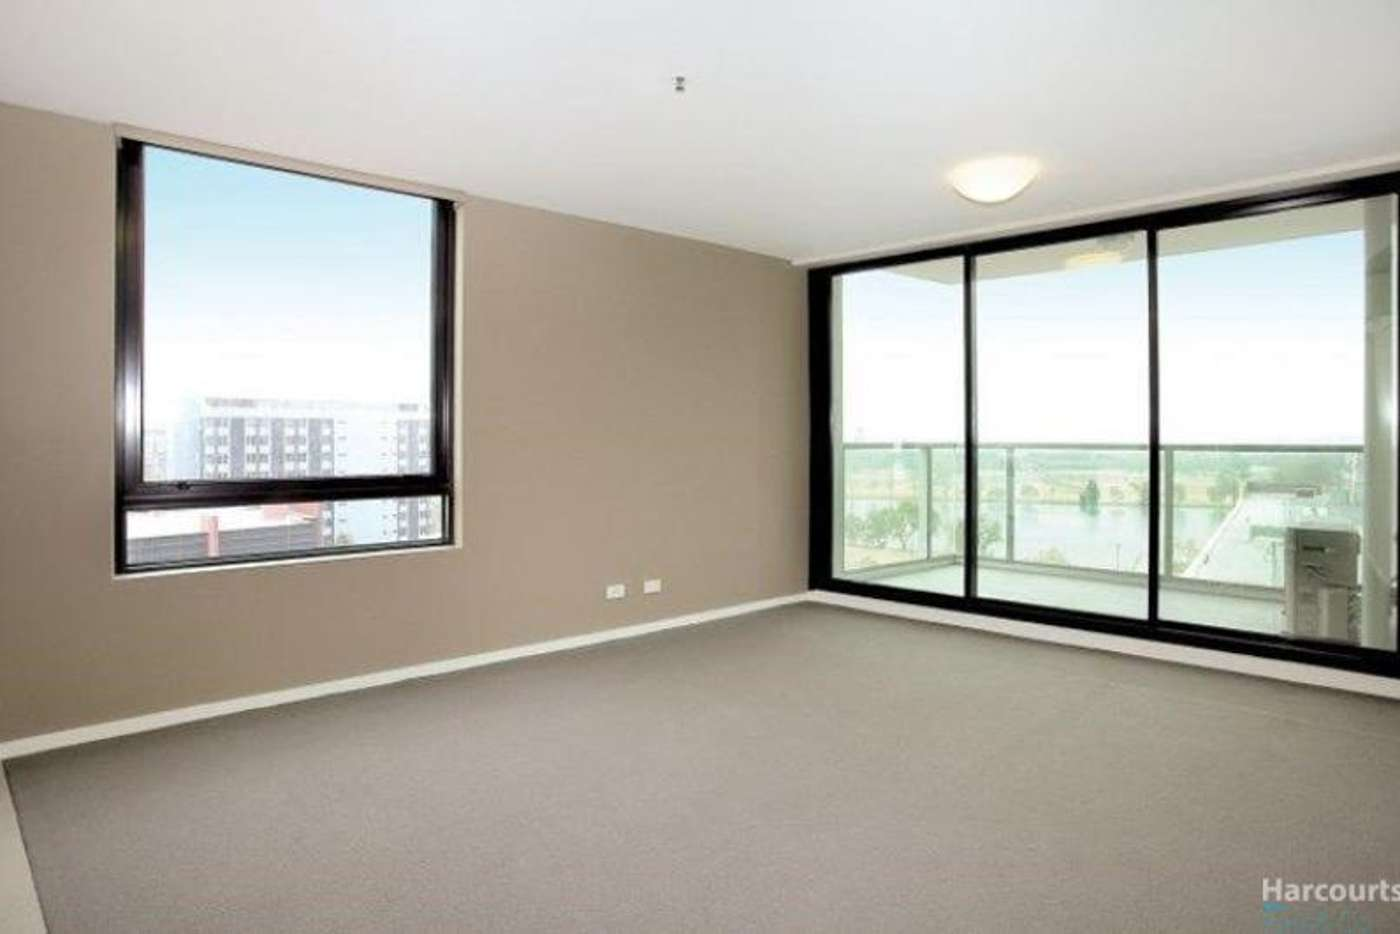 Sixth view of Homely apartment listing, 1212/594 St Kilda Road, Melbourne VIC 3004